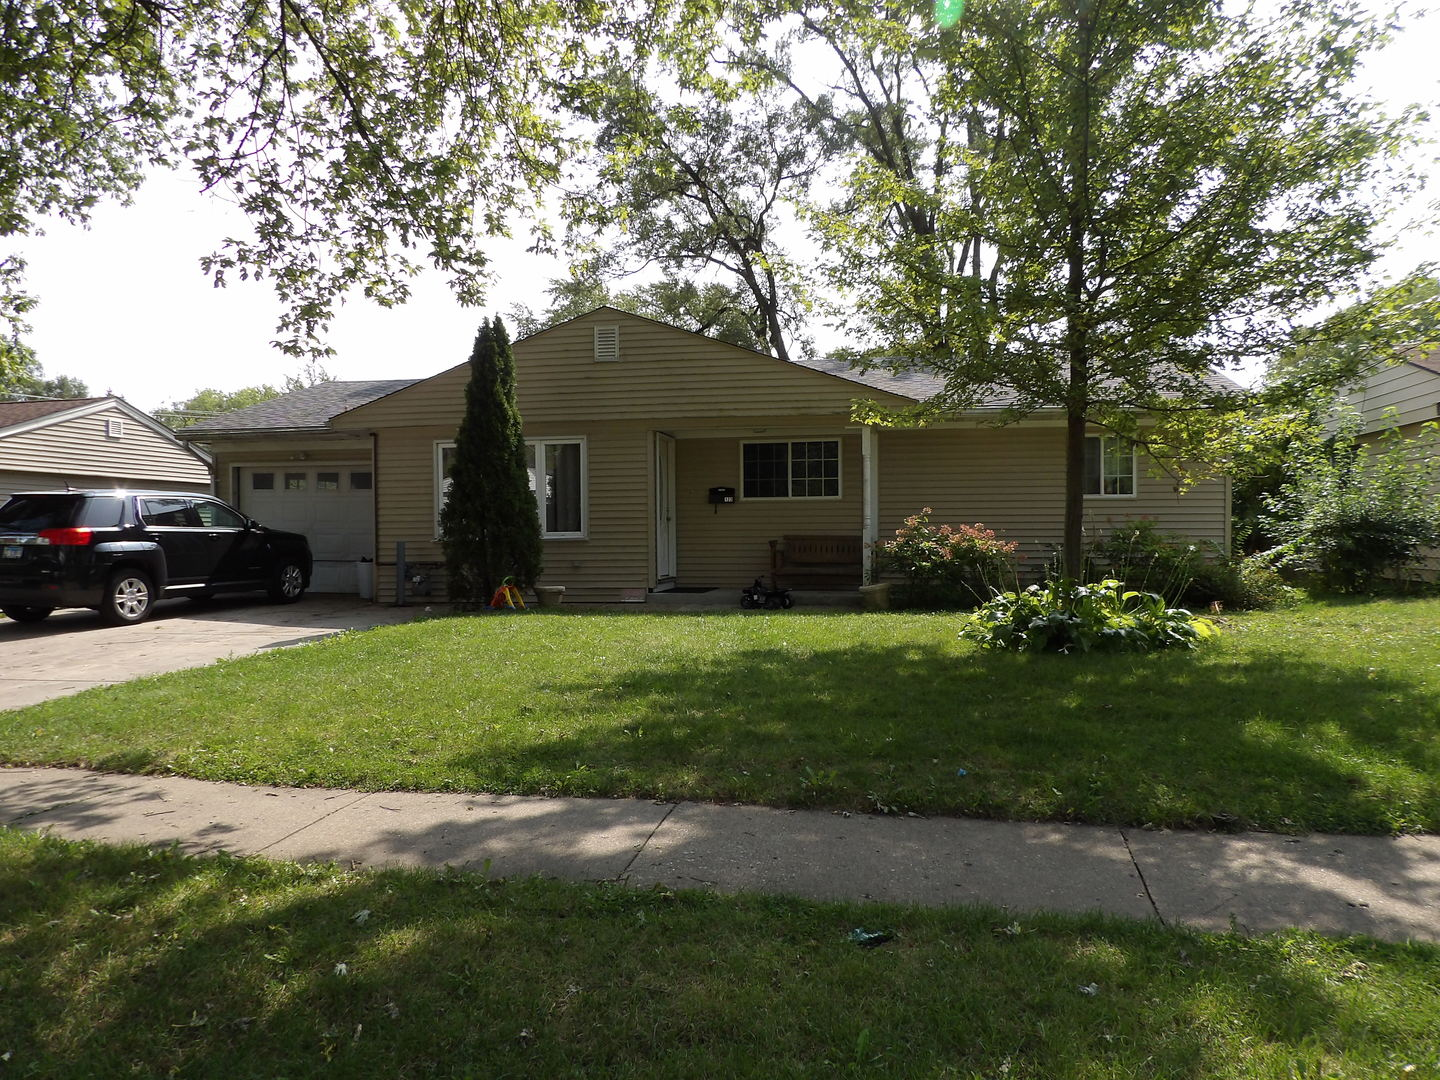 123 Hazard Road, Carpentersville IL 60110